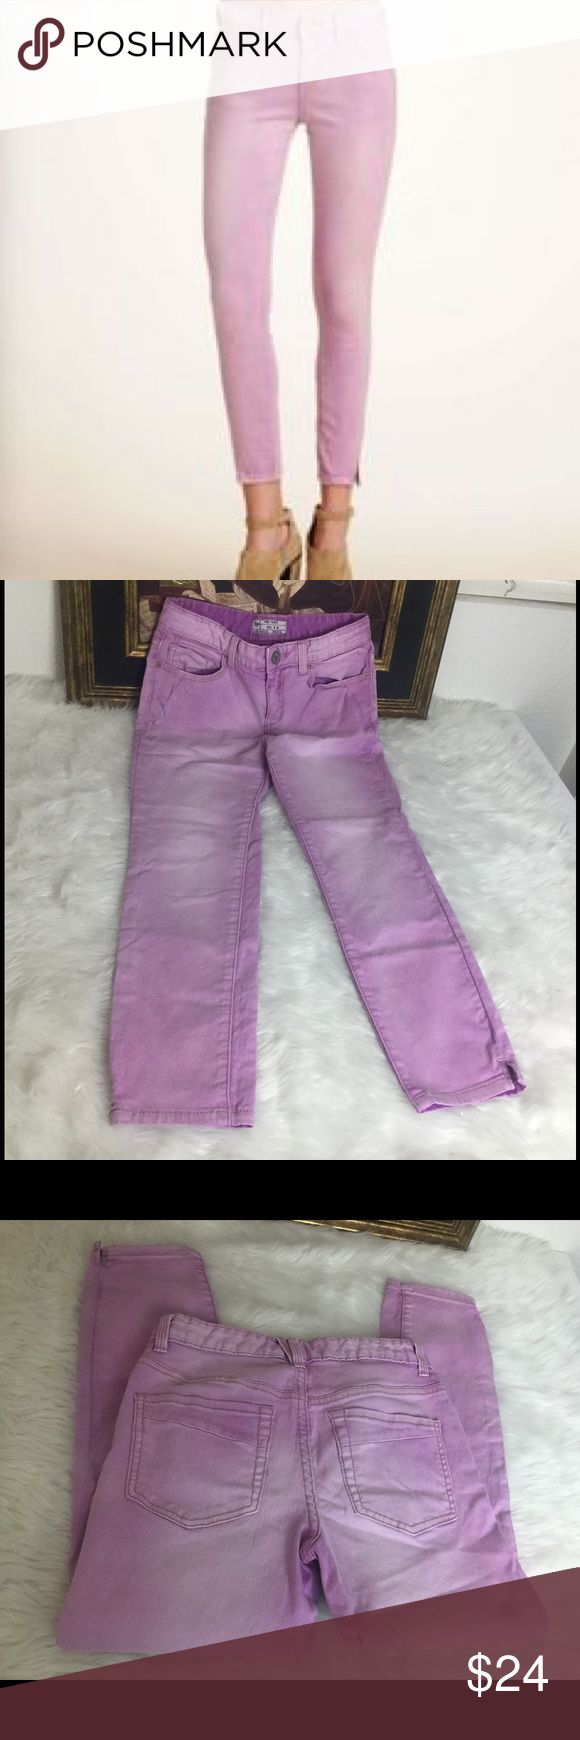 "Free People LIght Lavender Jeans.  Sz 26🎈 Three people Jeans.  Sz 26.  The color is more like the first picture.  My camera wants the other color..lol. Waist 13"". Inseam 24"". Rise 9"". N good shape Free People Jeans Ankle & Cropped"